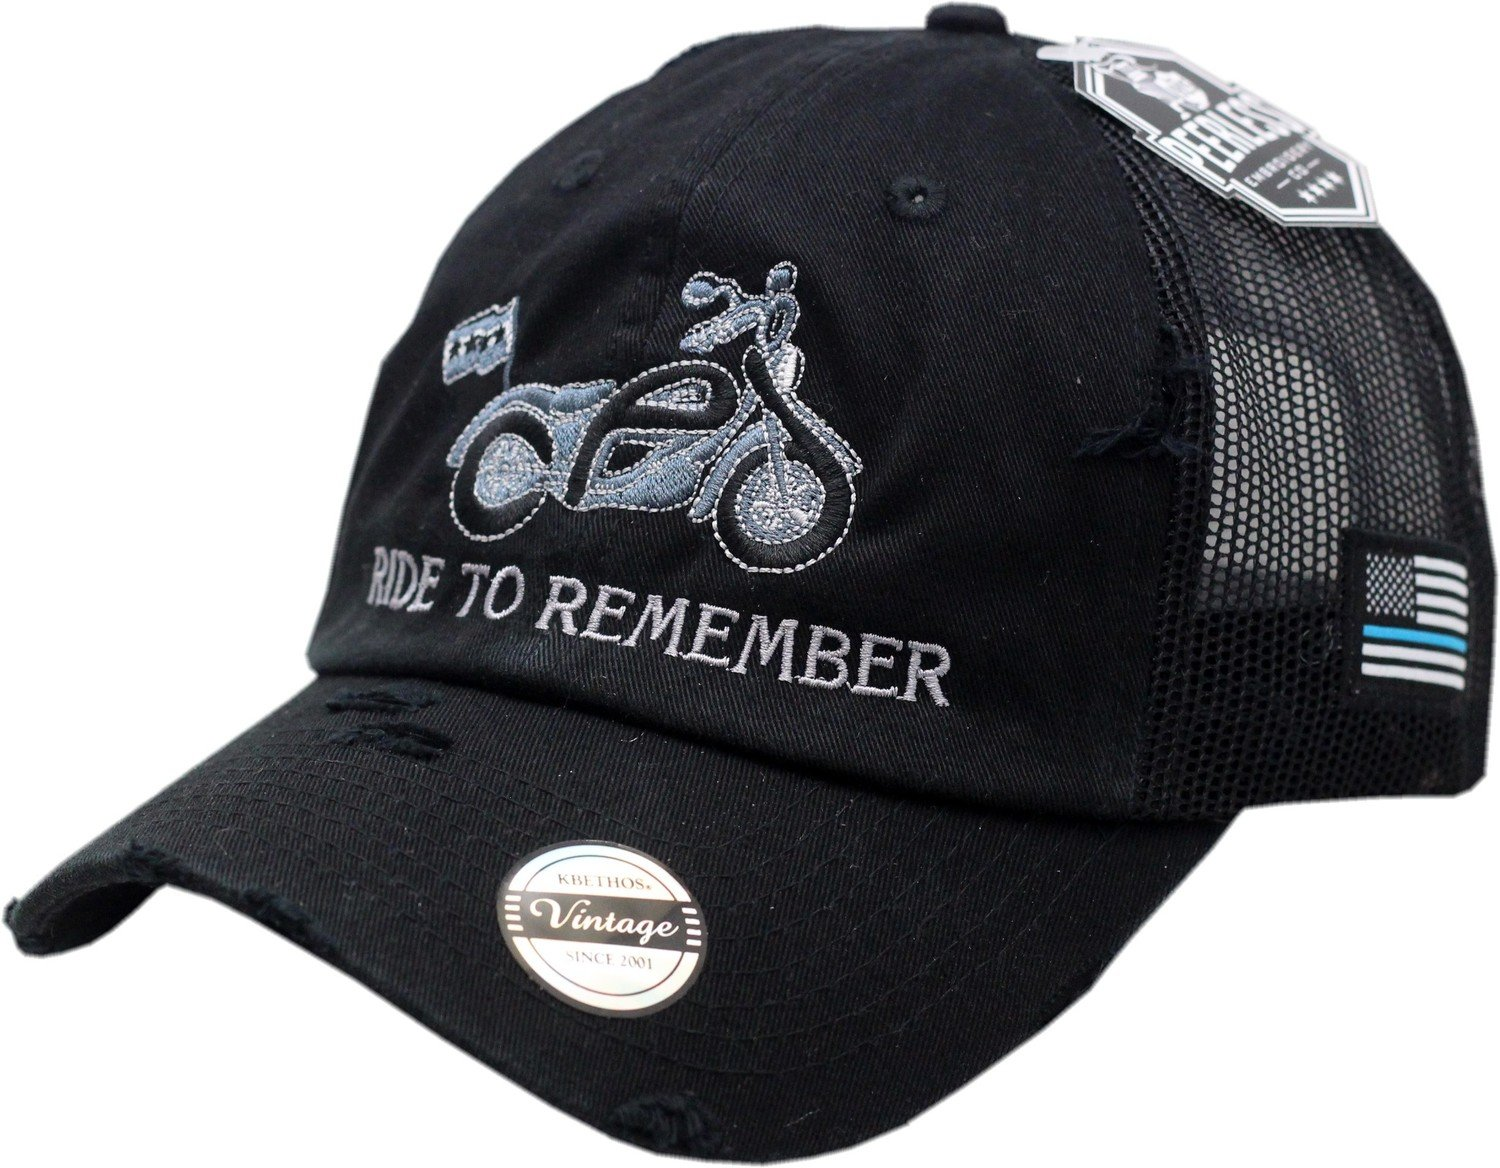 Ride To Remember Snapback Trucker Mesh Vintage Black